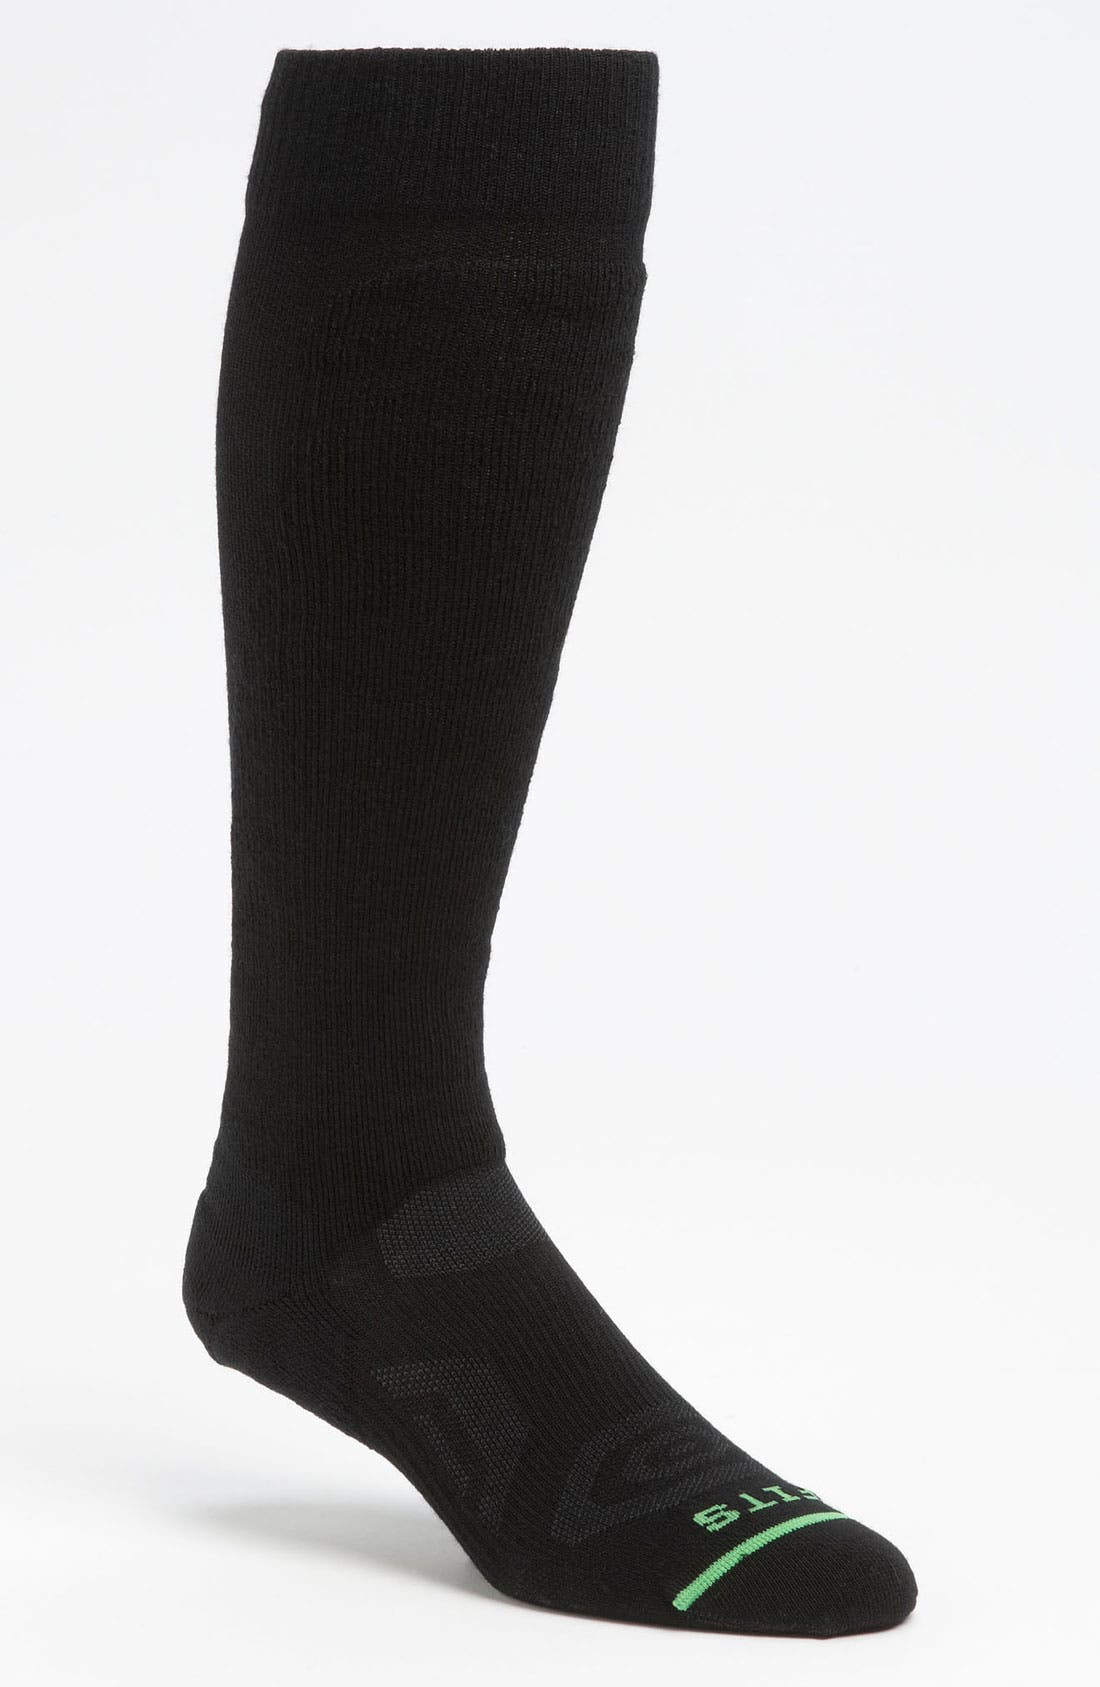 Alternate Image 1 Selected - FITS Sock Co. 'Pro Ski' Over the Calf Socks (Online Exclusive)